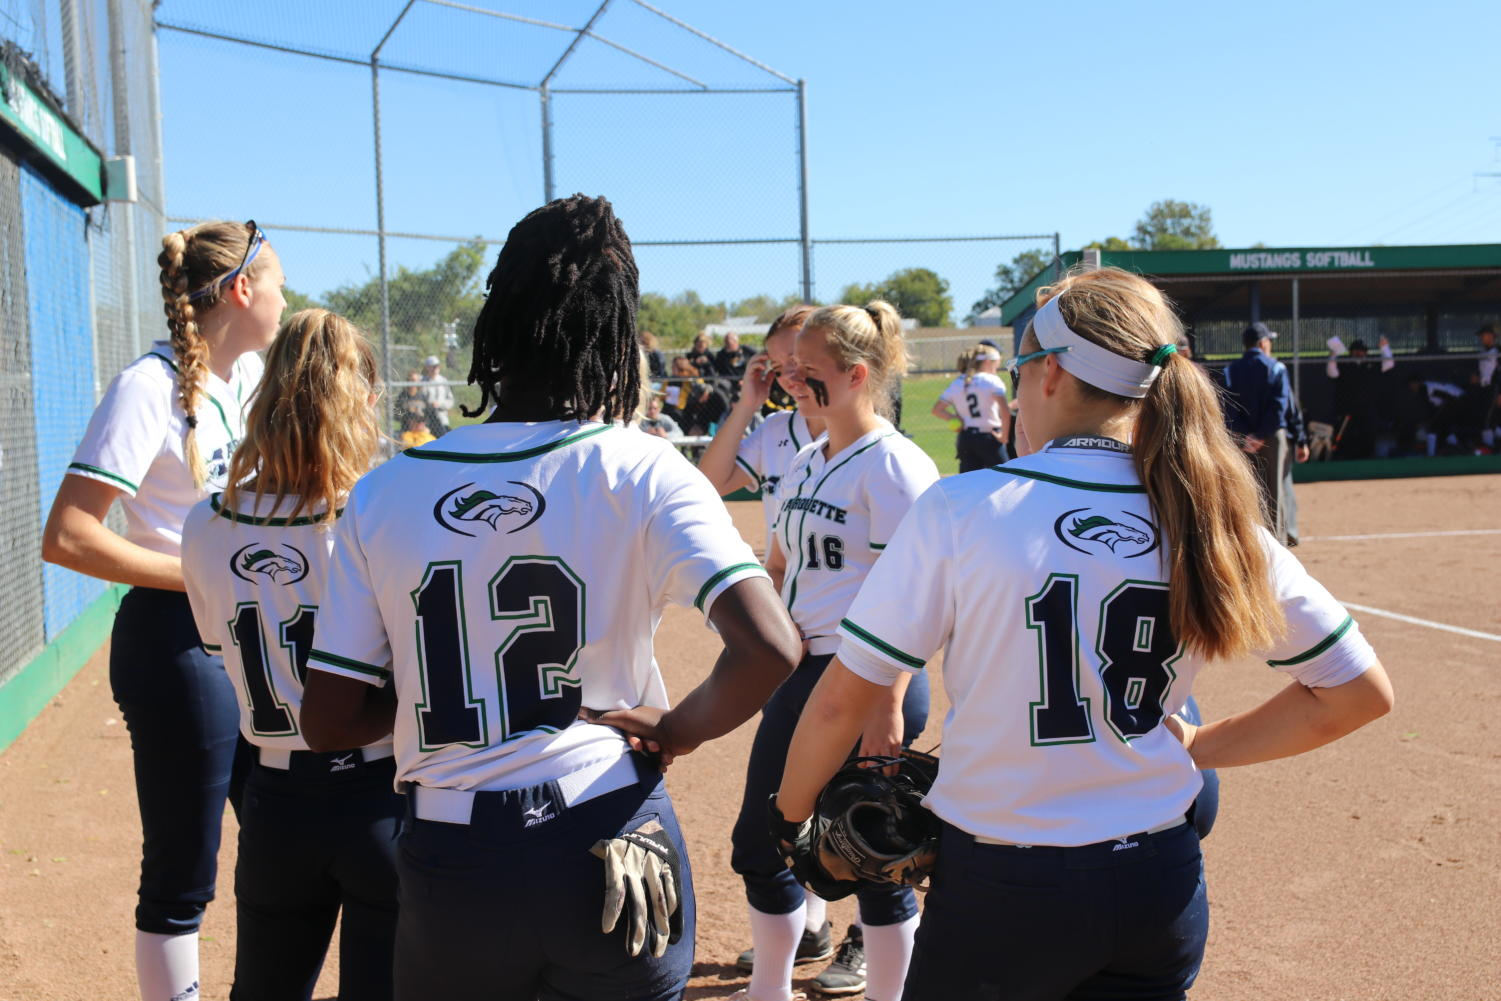 The softball team meets before the start of the Quarterfinals game on Oct. 20 at MHS. The team faced Oakville tigers.